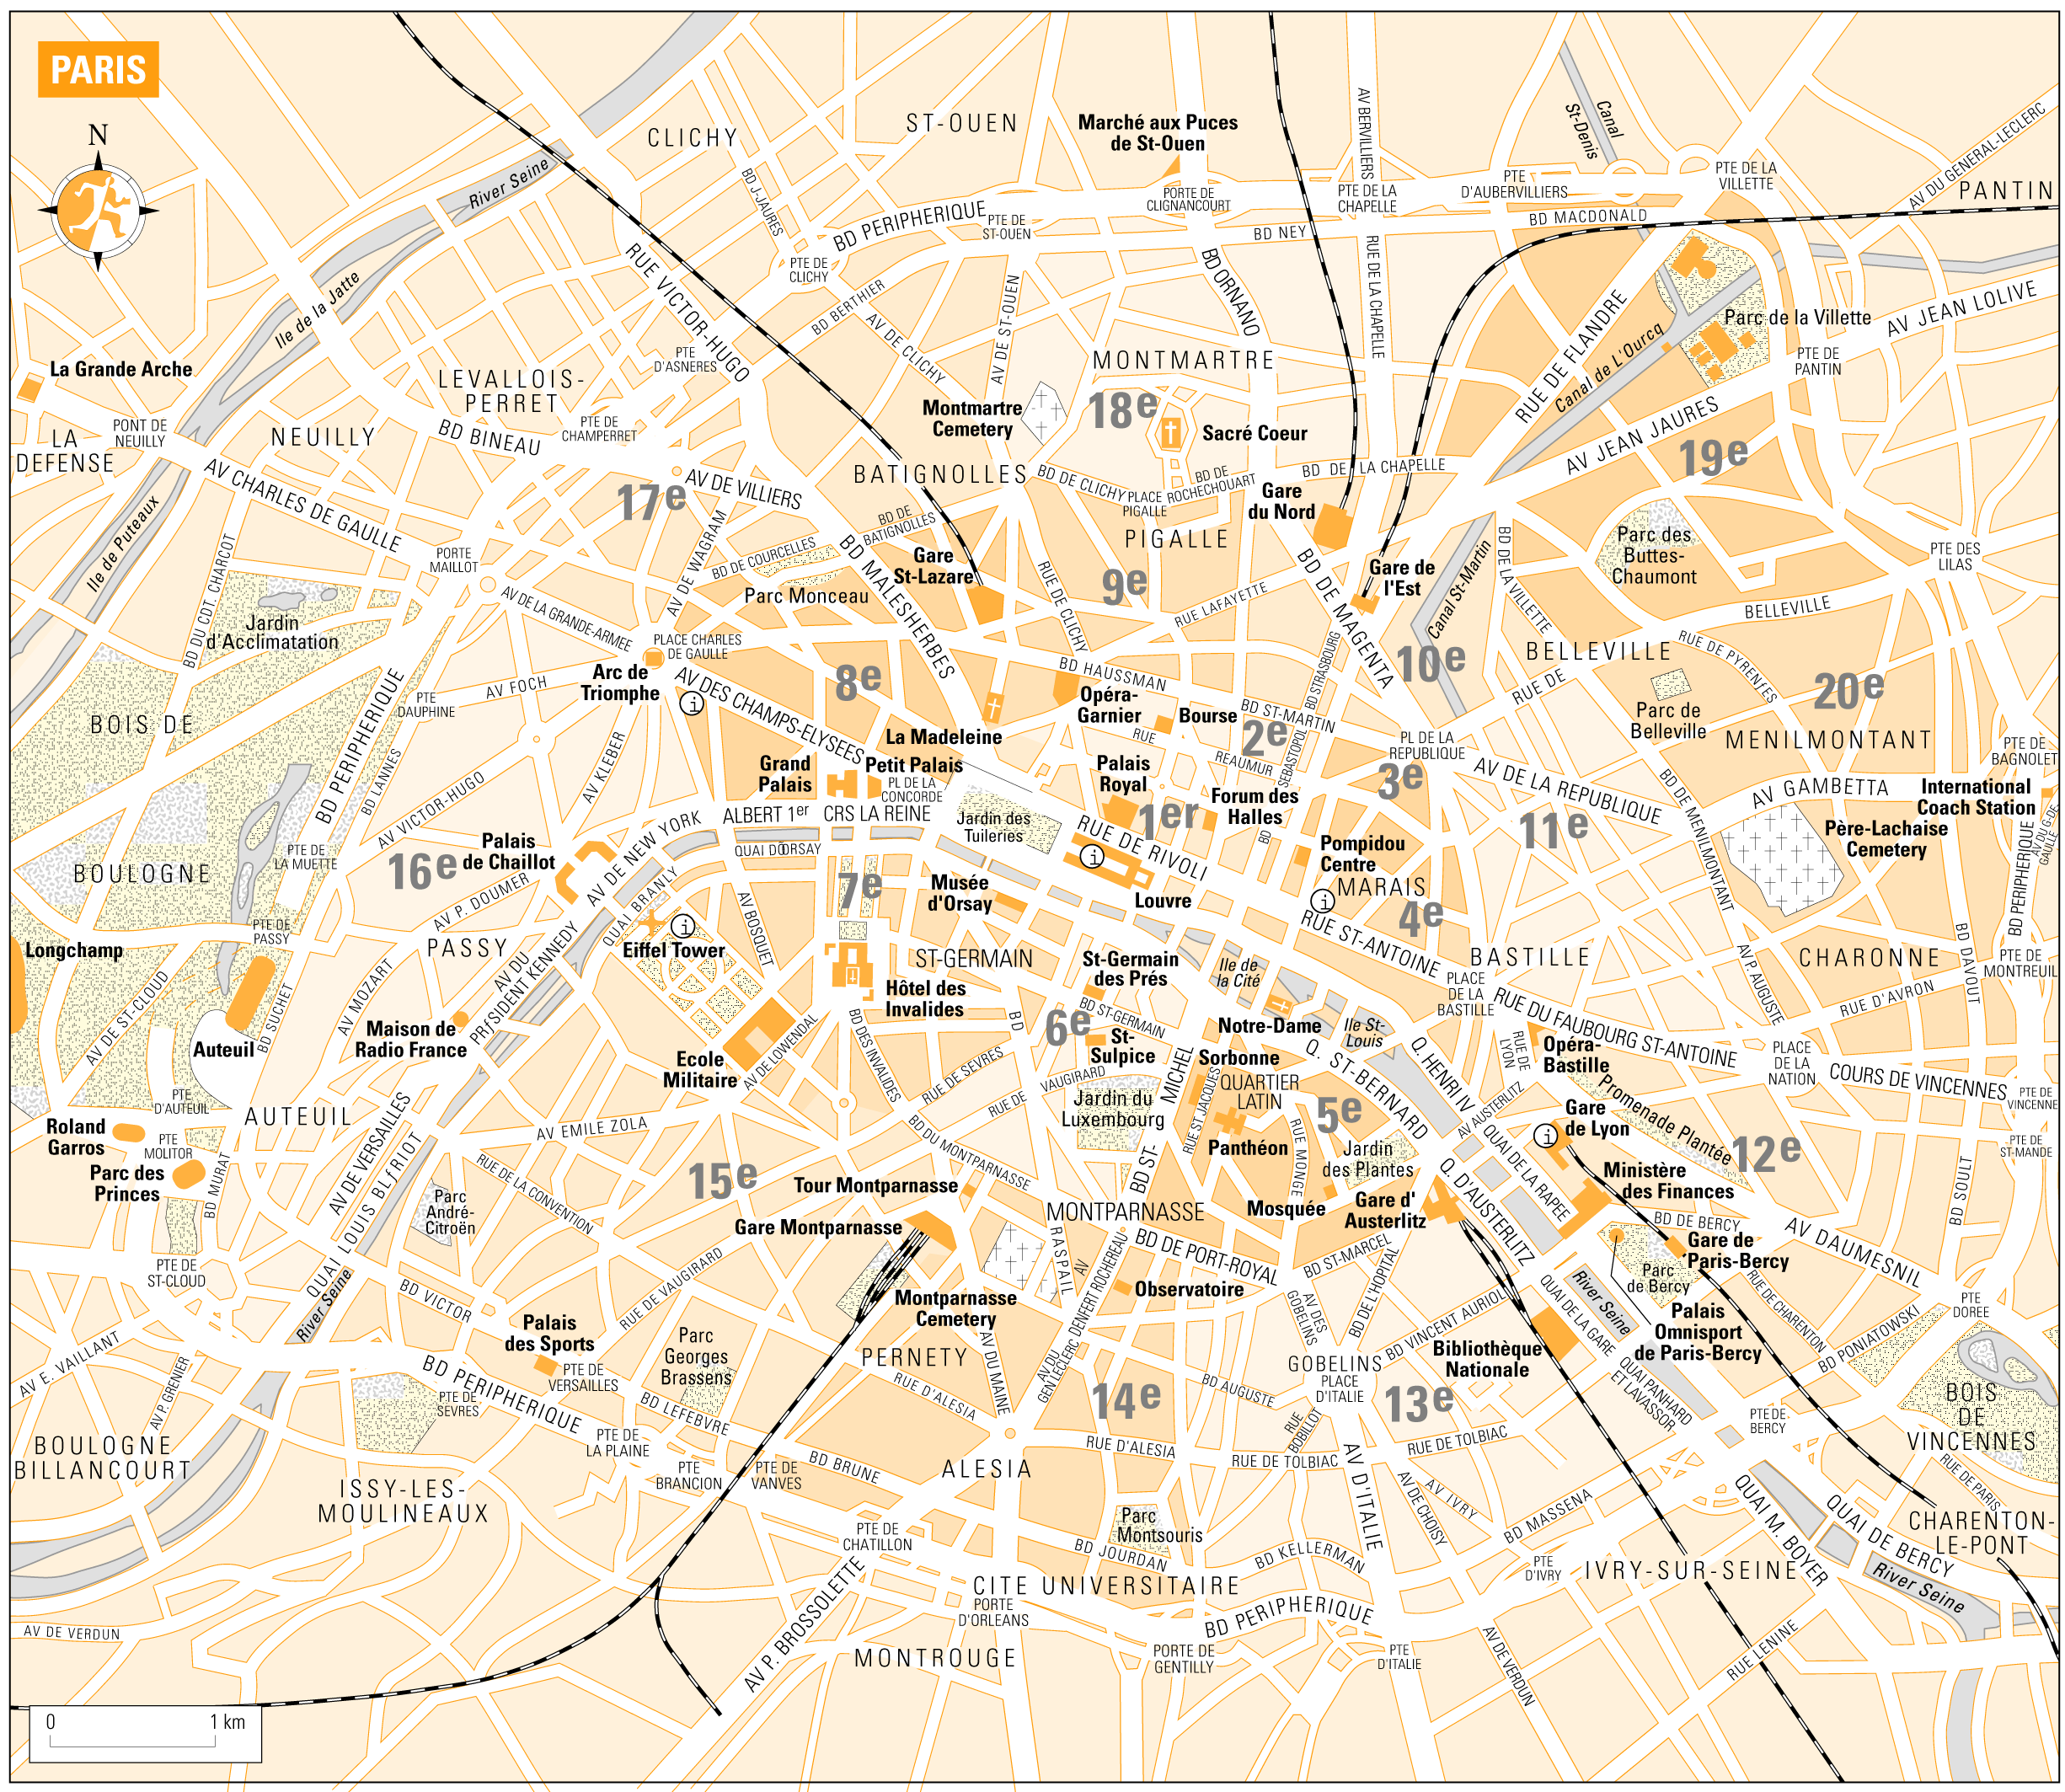 Paris Tourist Bus Map Mapsofnet – Paris Tourist Map English